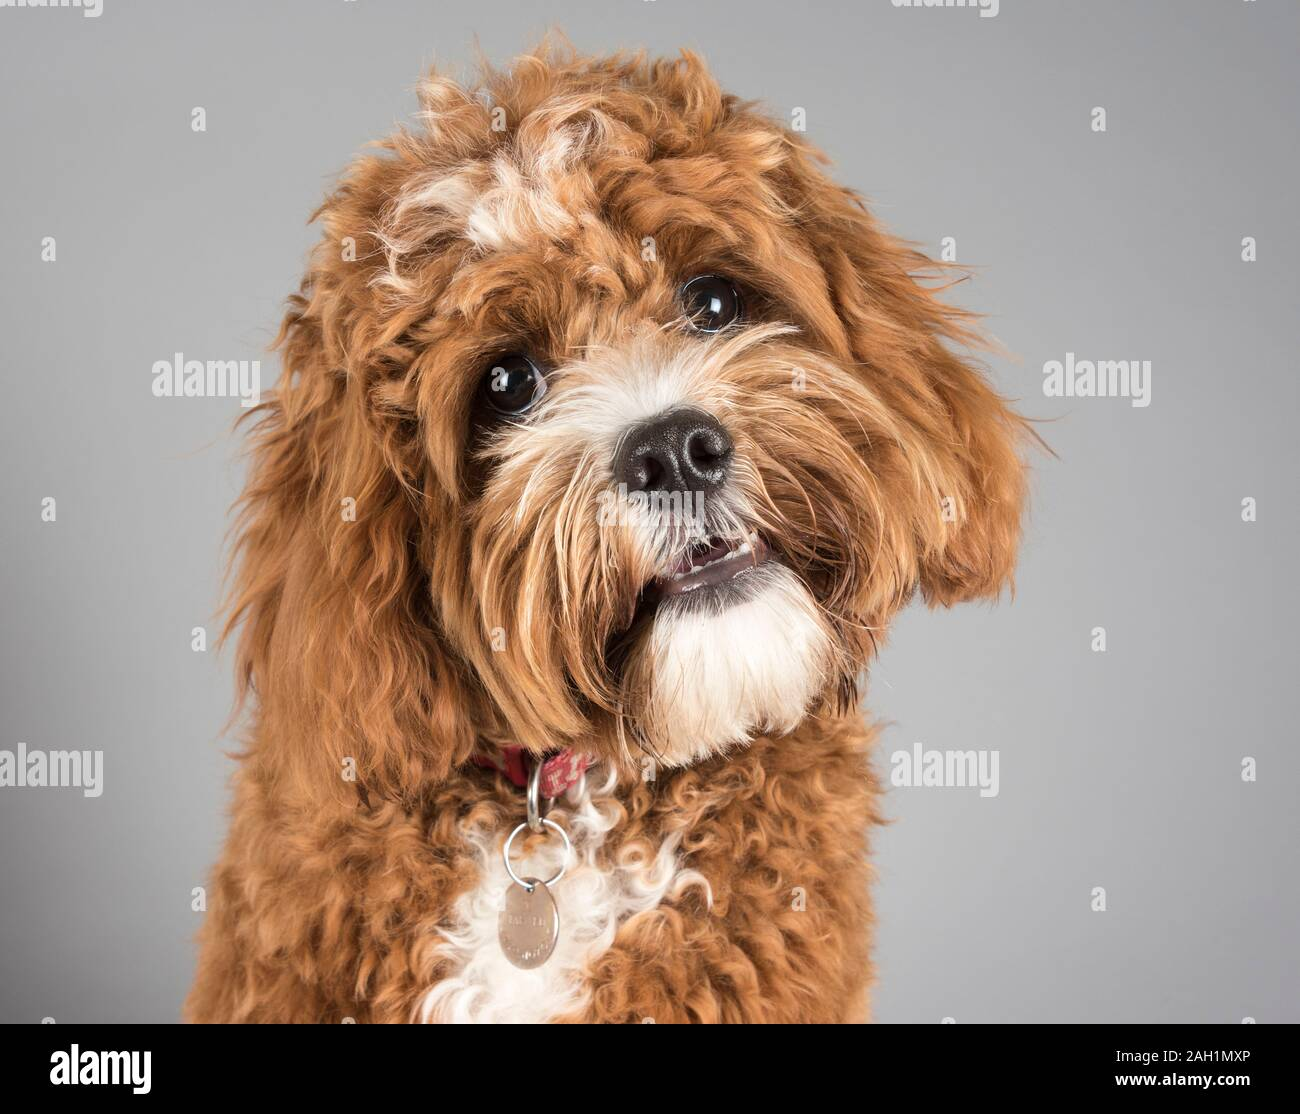 Cavapoo Dog High Resolution Stock Photography And Images Alamy